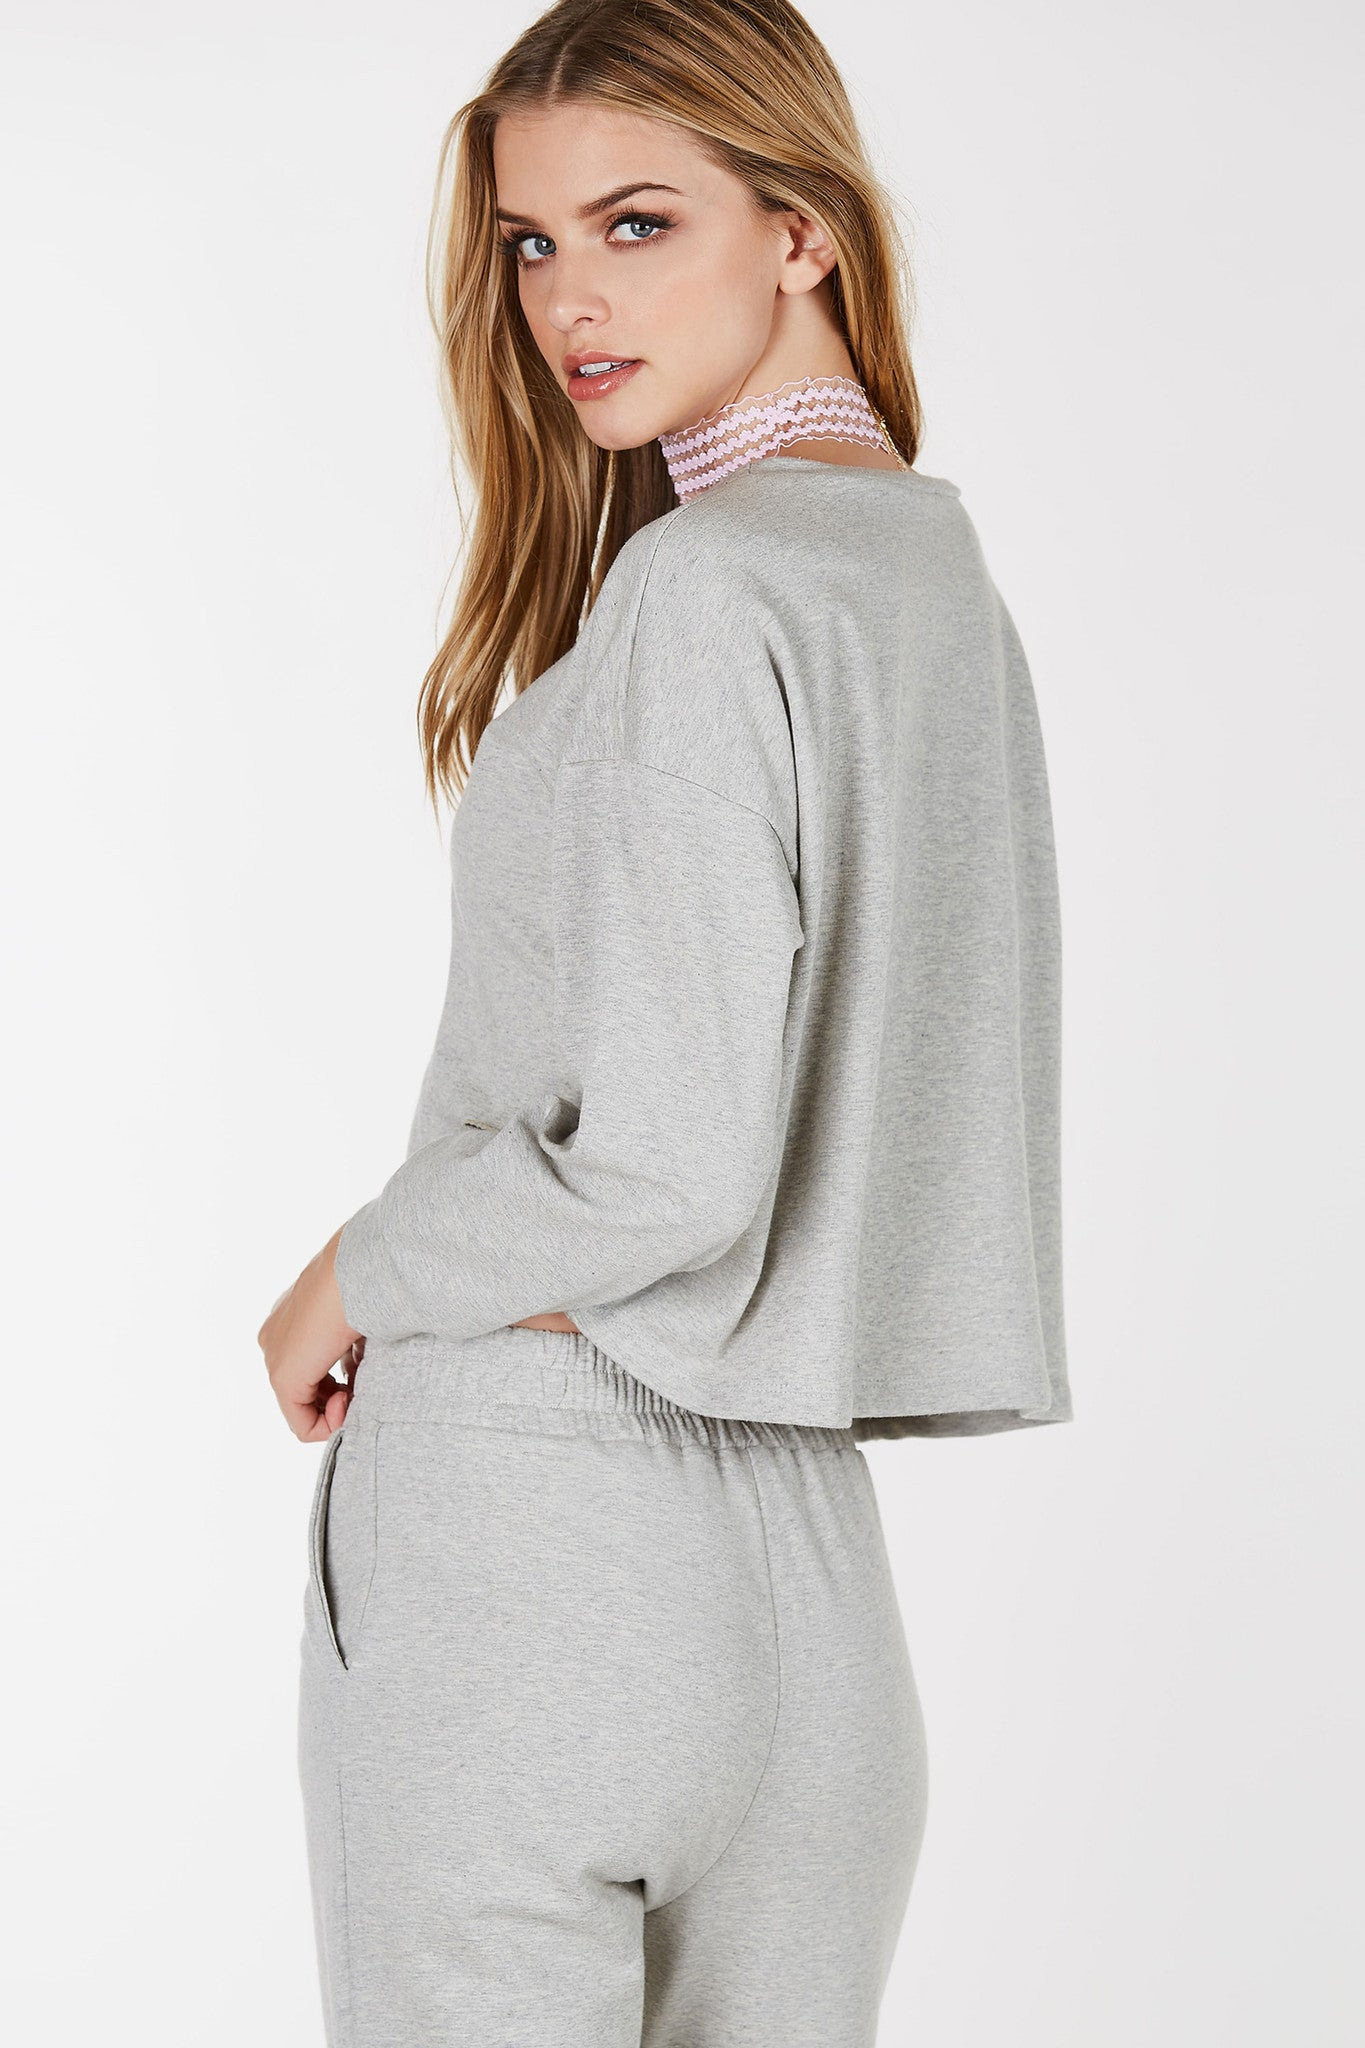 Crew neck long sleeve sweatshirt with distressing. Cropped straight hem with oversized fit.